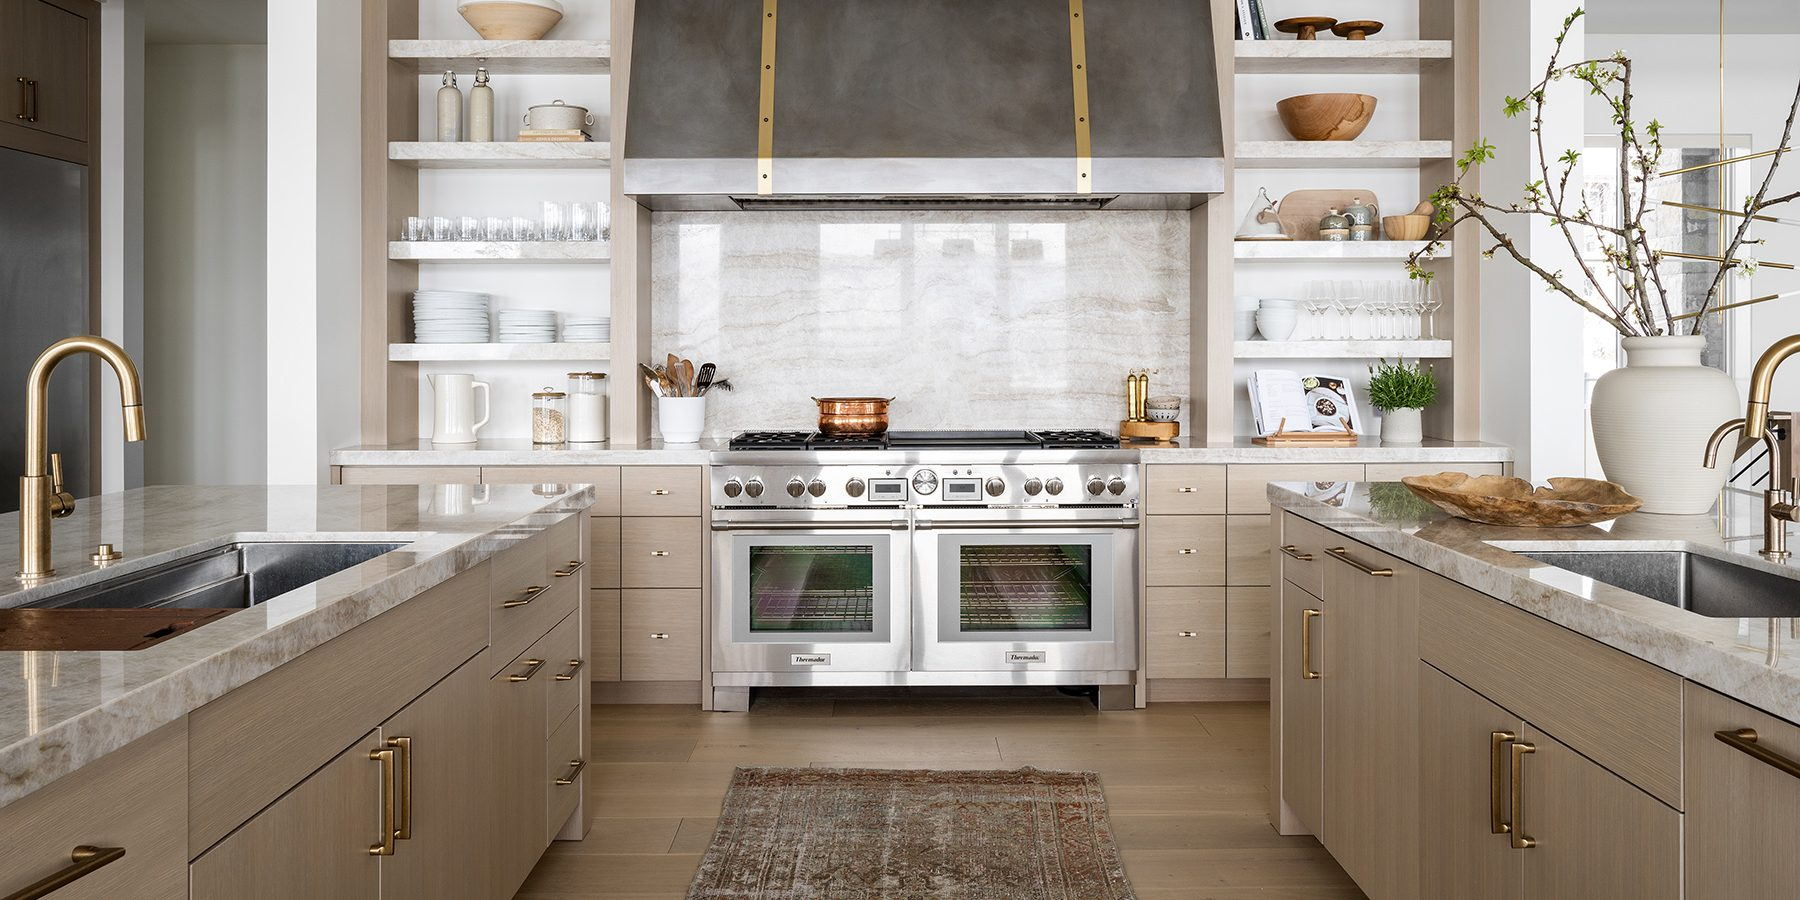 Why We Love Rugs in The Kitchen